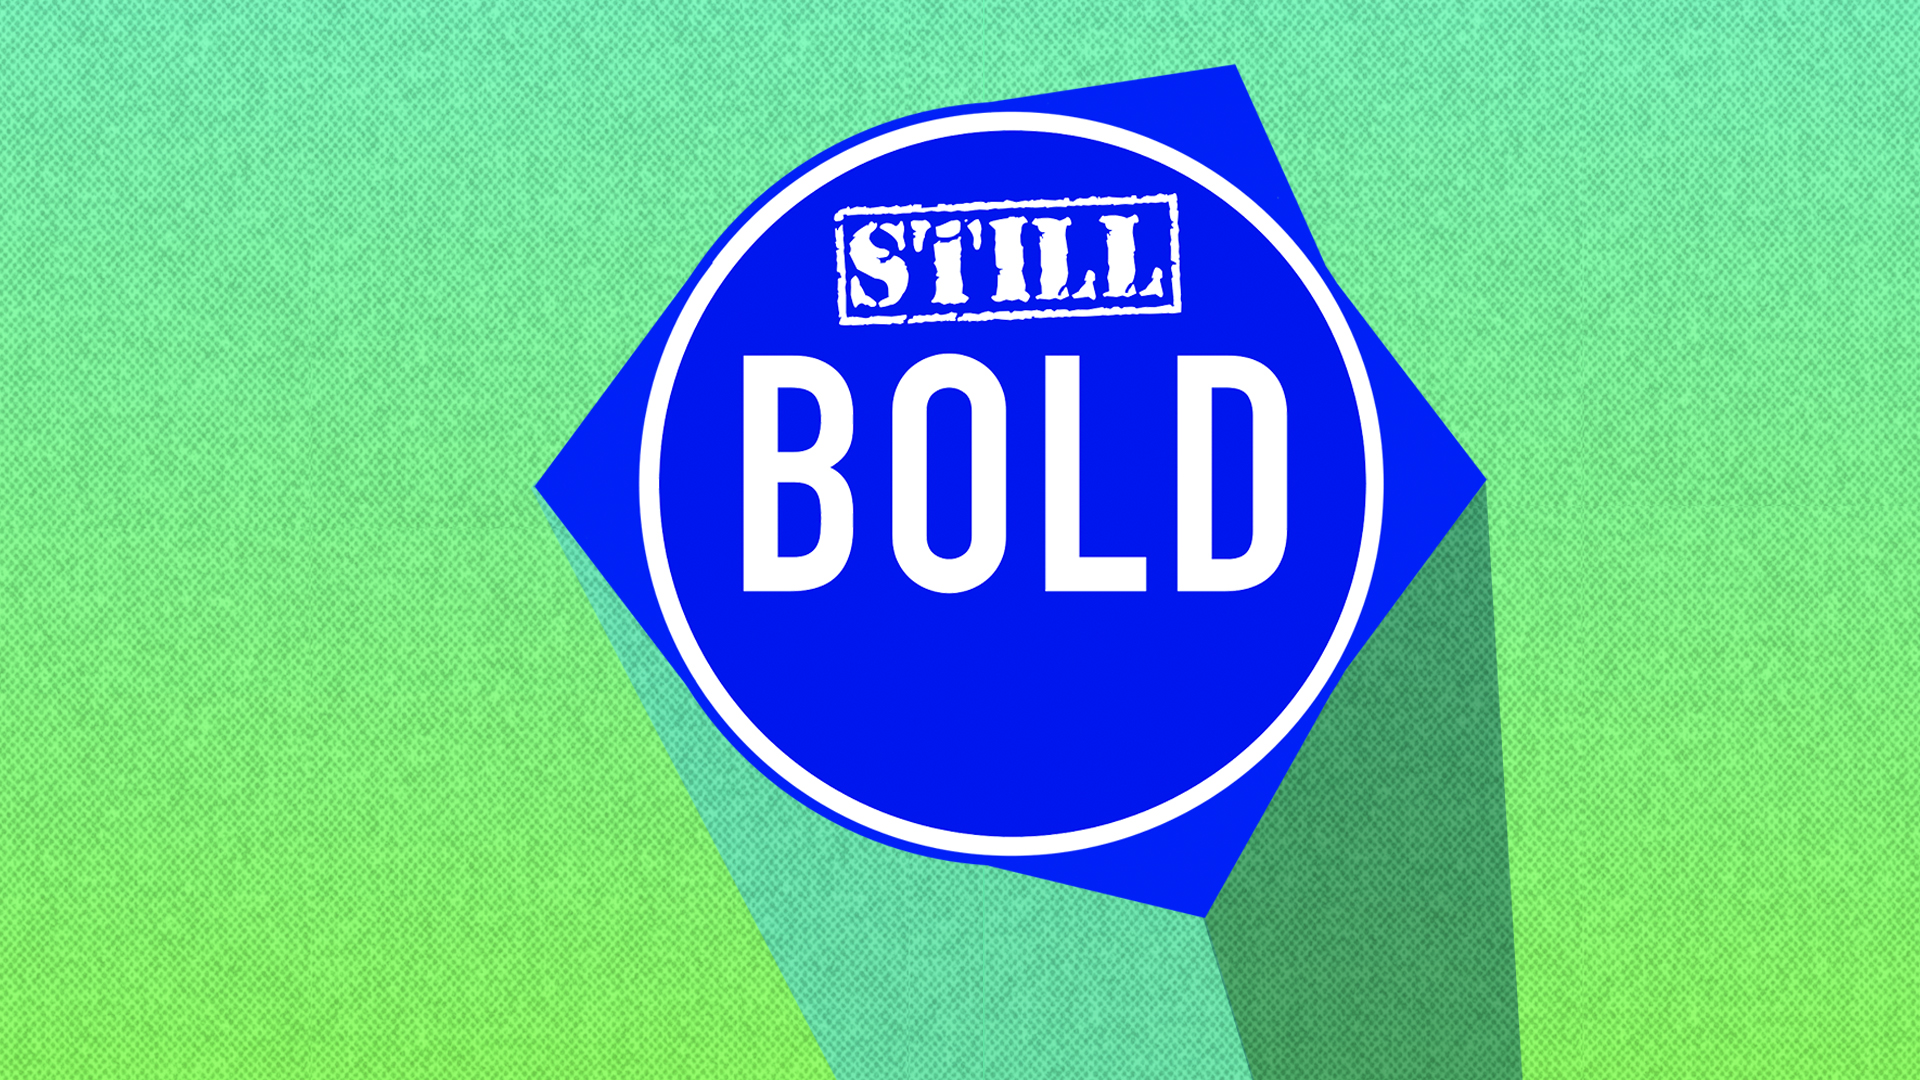 """""""STILL BOLD"""" - New Series beginning February 7th    It's the one year anniversary of  """"BOLD""""  and we believe God has more to say to us about what it means to live with  BOLD  faith. Join us as we celebrate what God has been doing and look toward more  BOLD  things He is calling us to!   Crossbridge Kids and students will go through this series too.   Community Groups will study along with the series.   Enjoy a warm  BOLD  bowl of chili on the porch after each service! It will be  another """"Super BOLD Sunday""""!"""